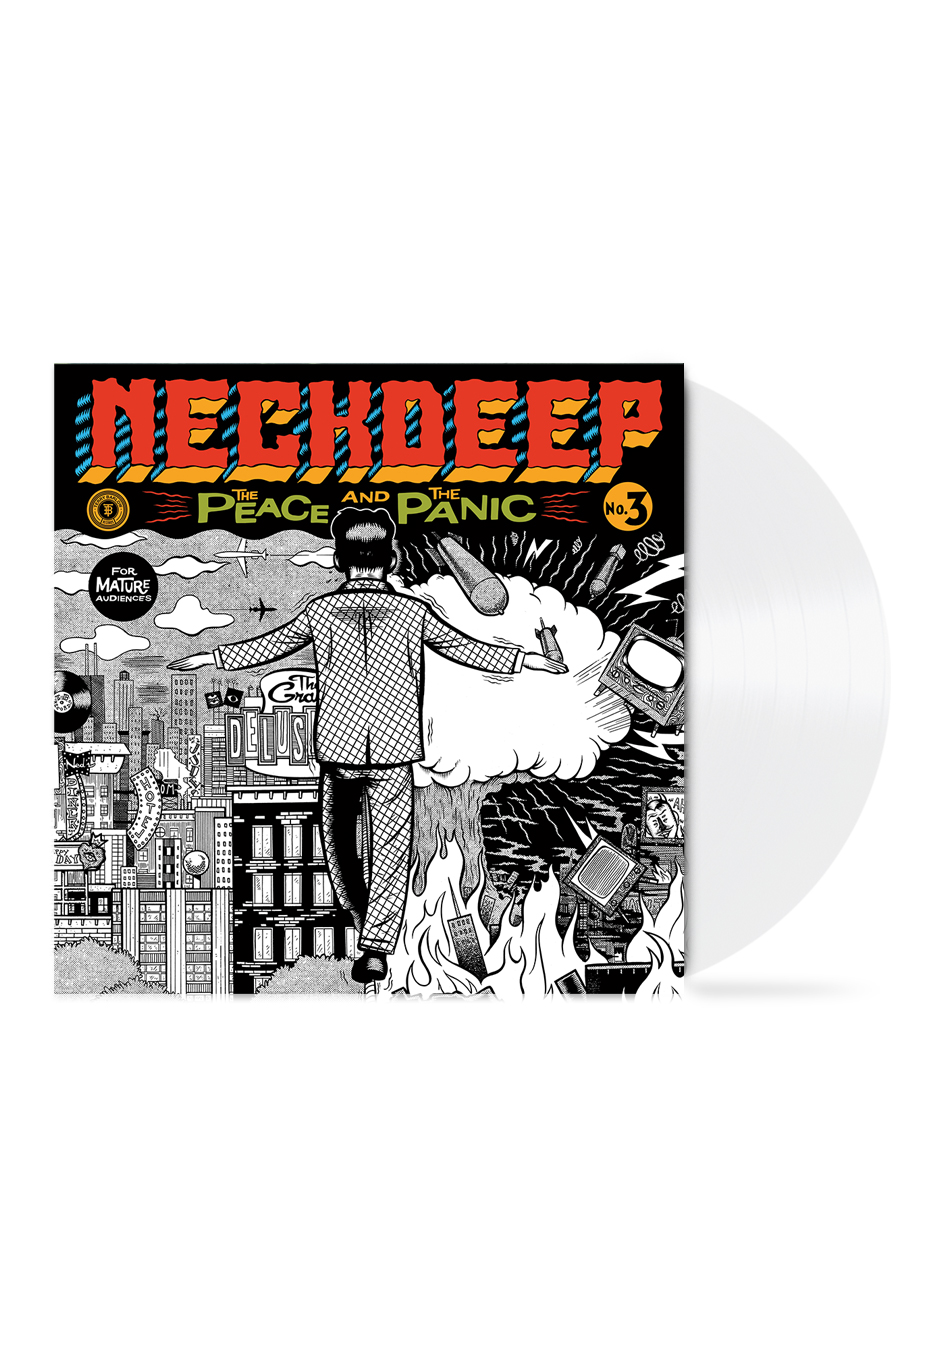 Neck Deep The Peace And The Panic White Colored Lp